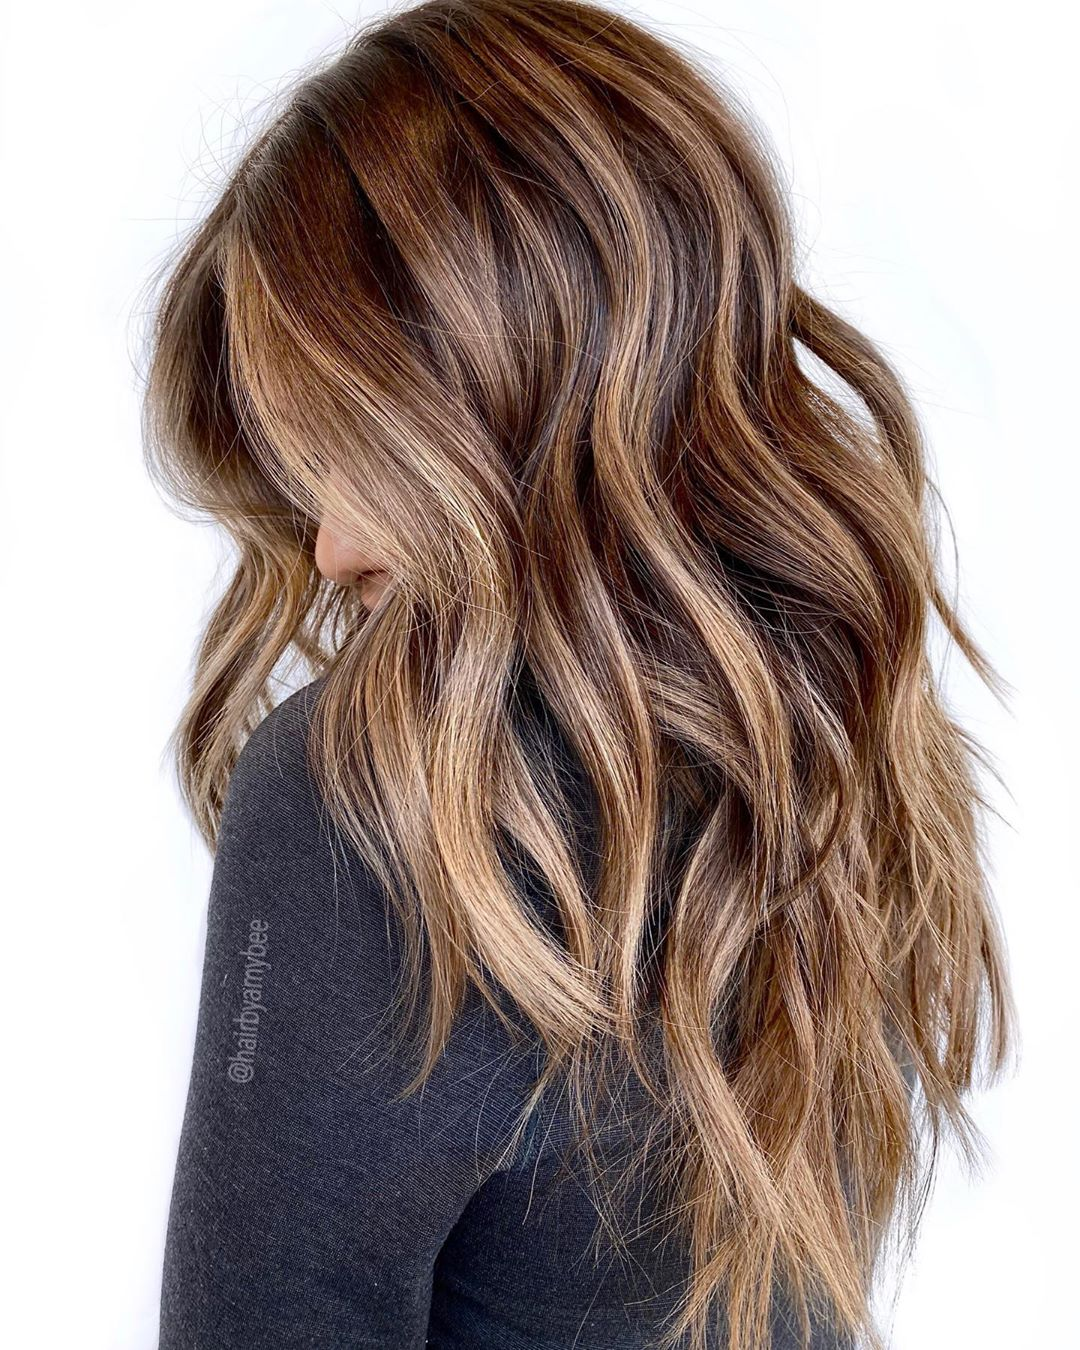 Caramel Hair with Chestnut Lowlights